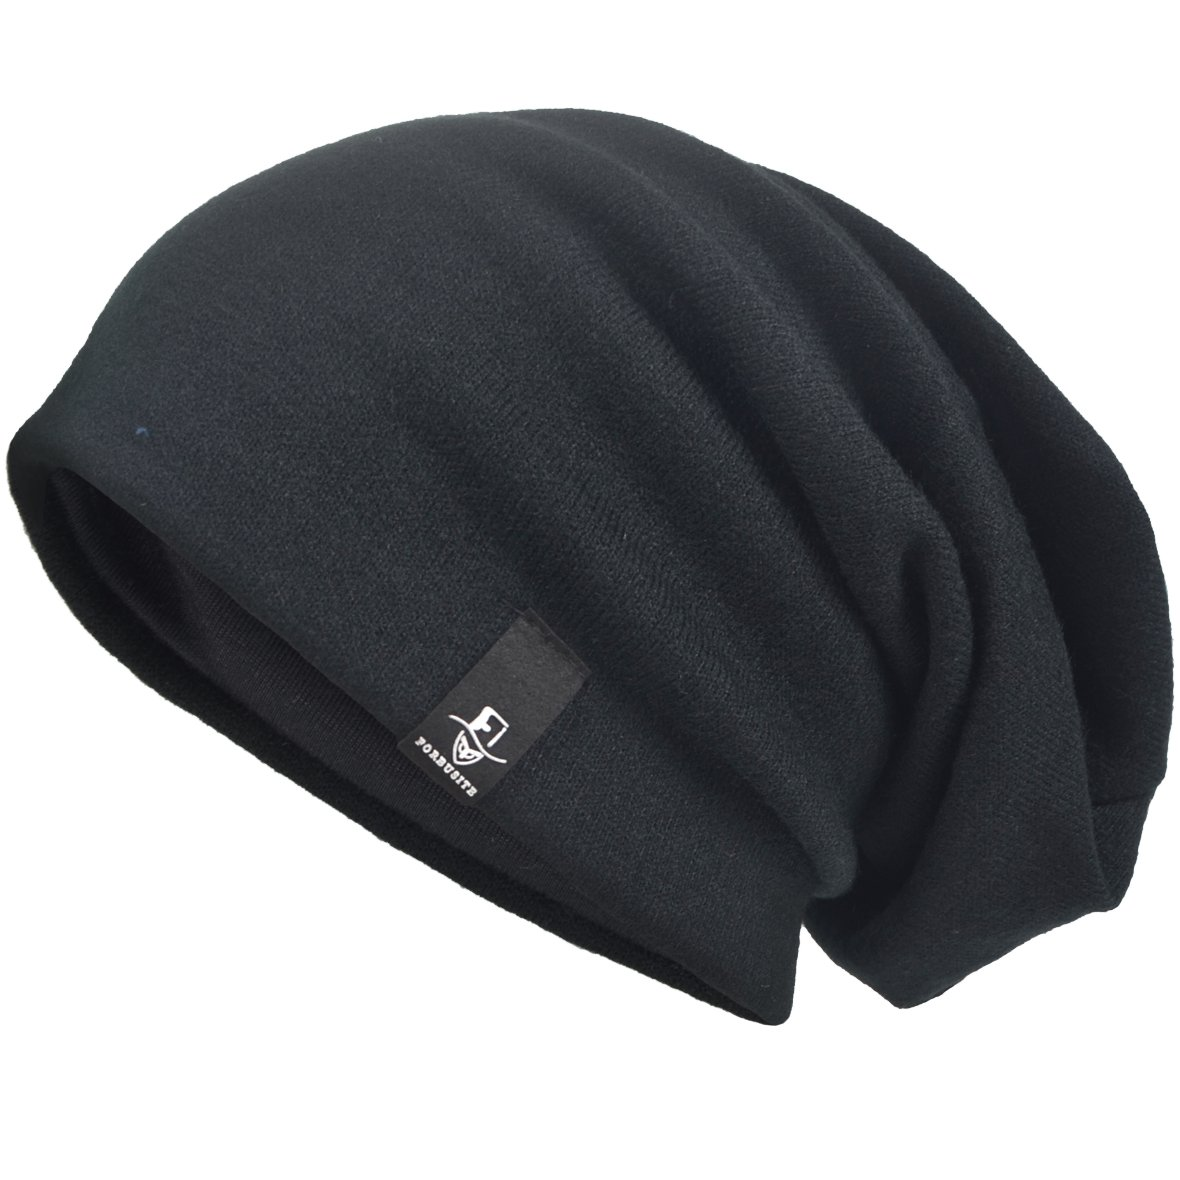 80cad6546b7 VECRY Men s Oversize Slouch Beanie Slouchy Skullcap Large Baggy Hat  (Black-1) at Amazon Men s Clothing store